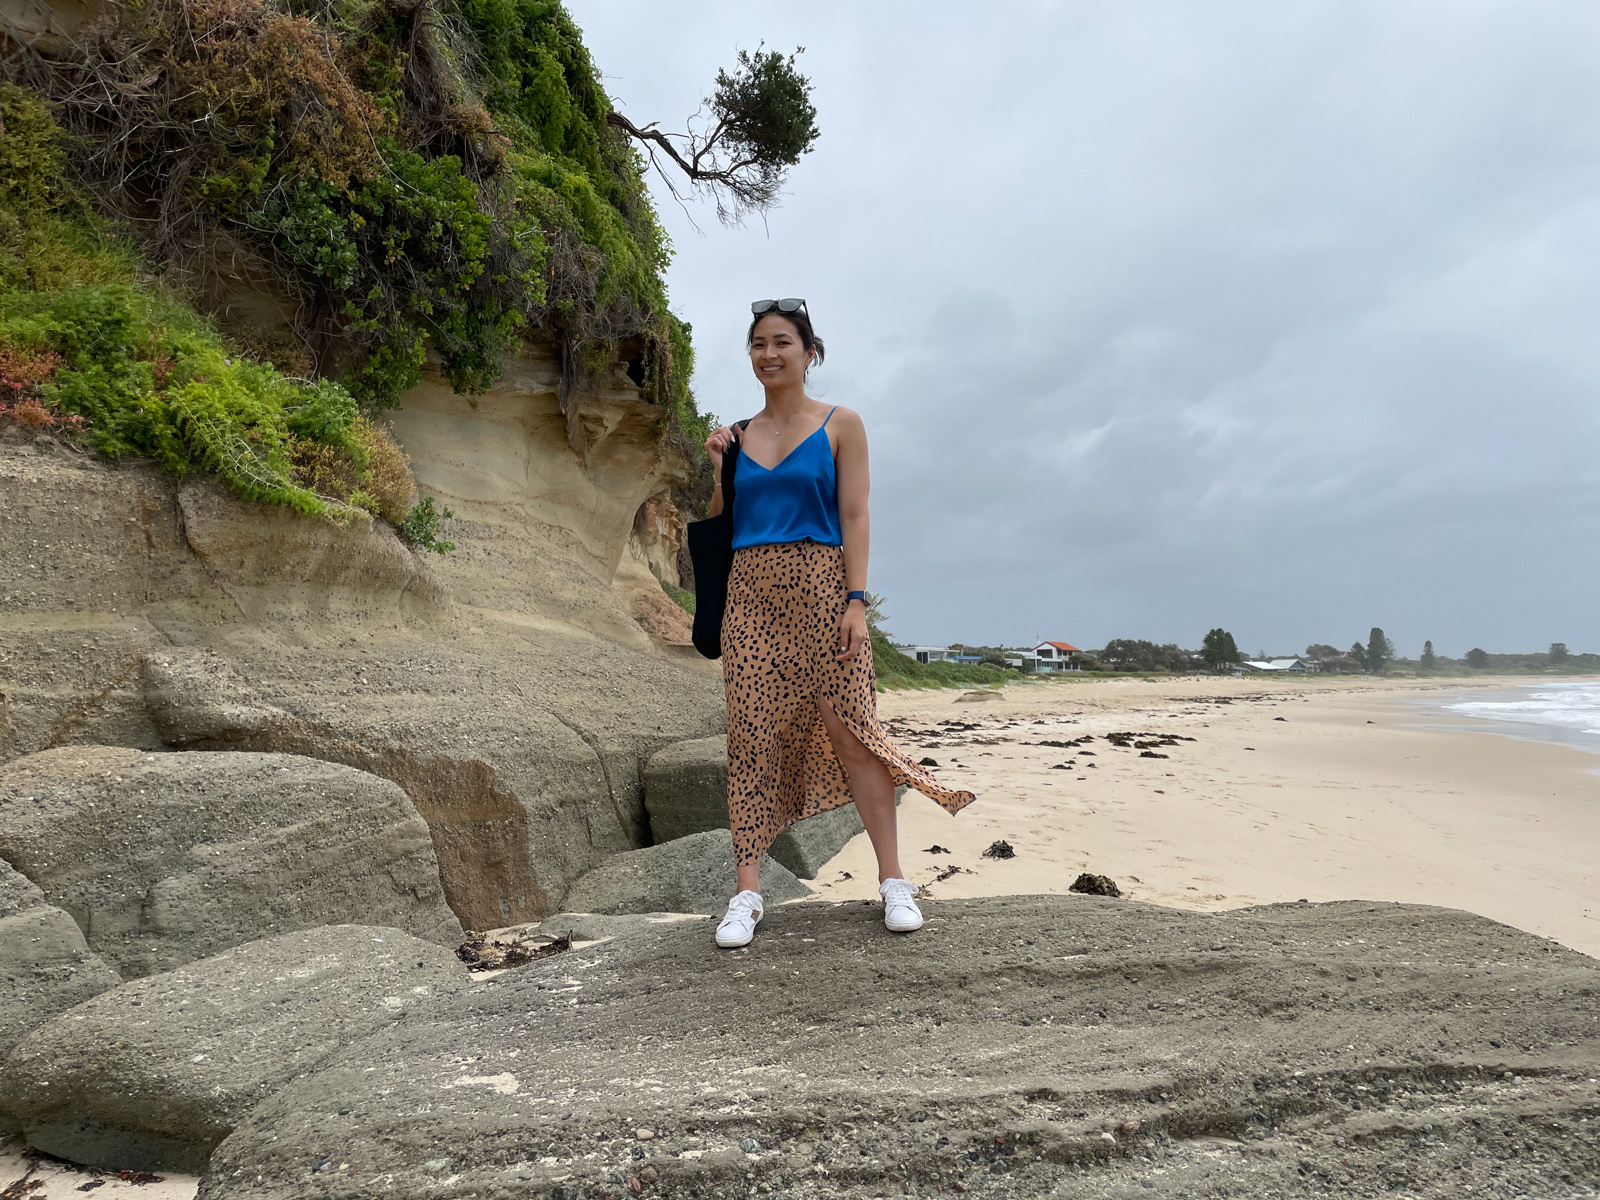 A woman wearing a blue top, animal print skirt and white shoes, standing on a giant rock on a beach. She is smiling and carrying a black tote bag, and wearing sunglasses on top of her head. The sky looks a little grey and cloudy.